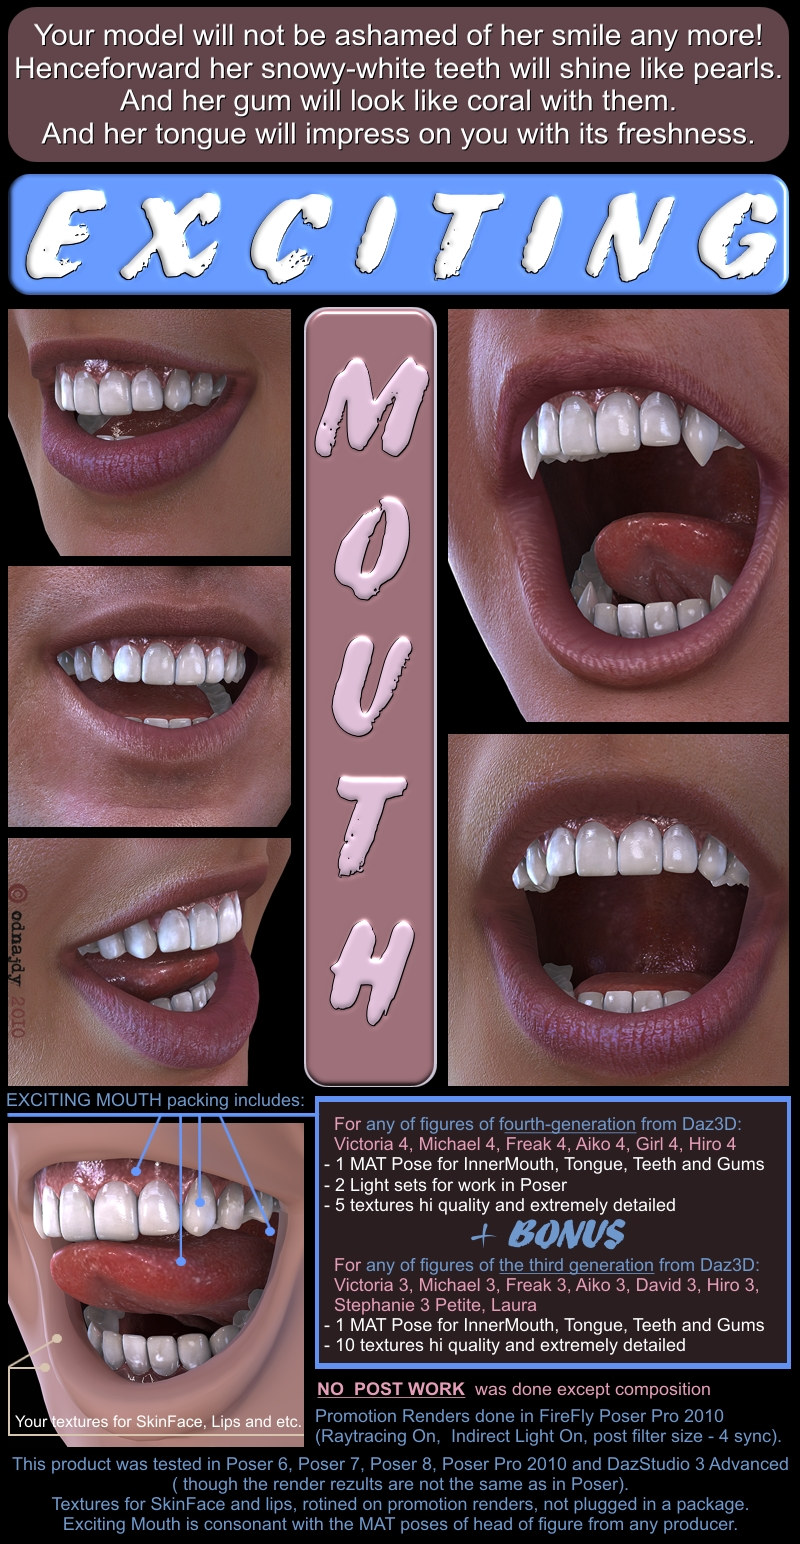 Exciting Mouth